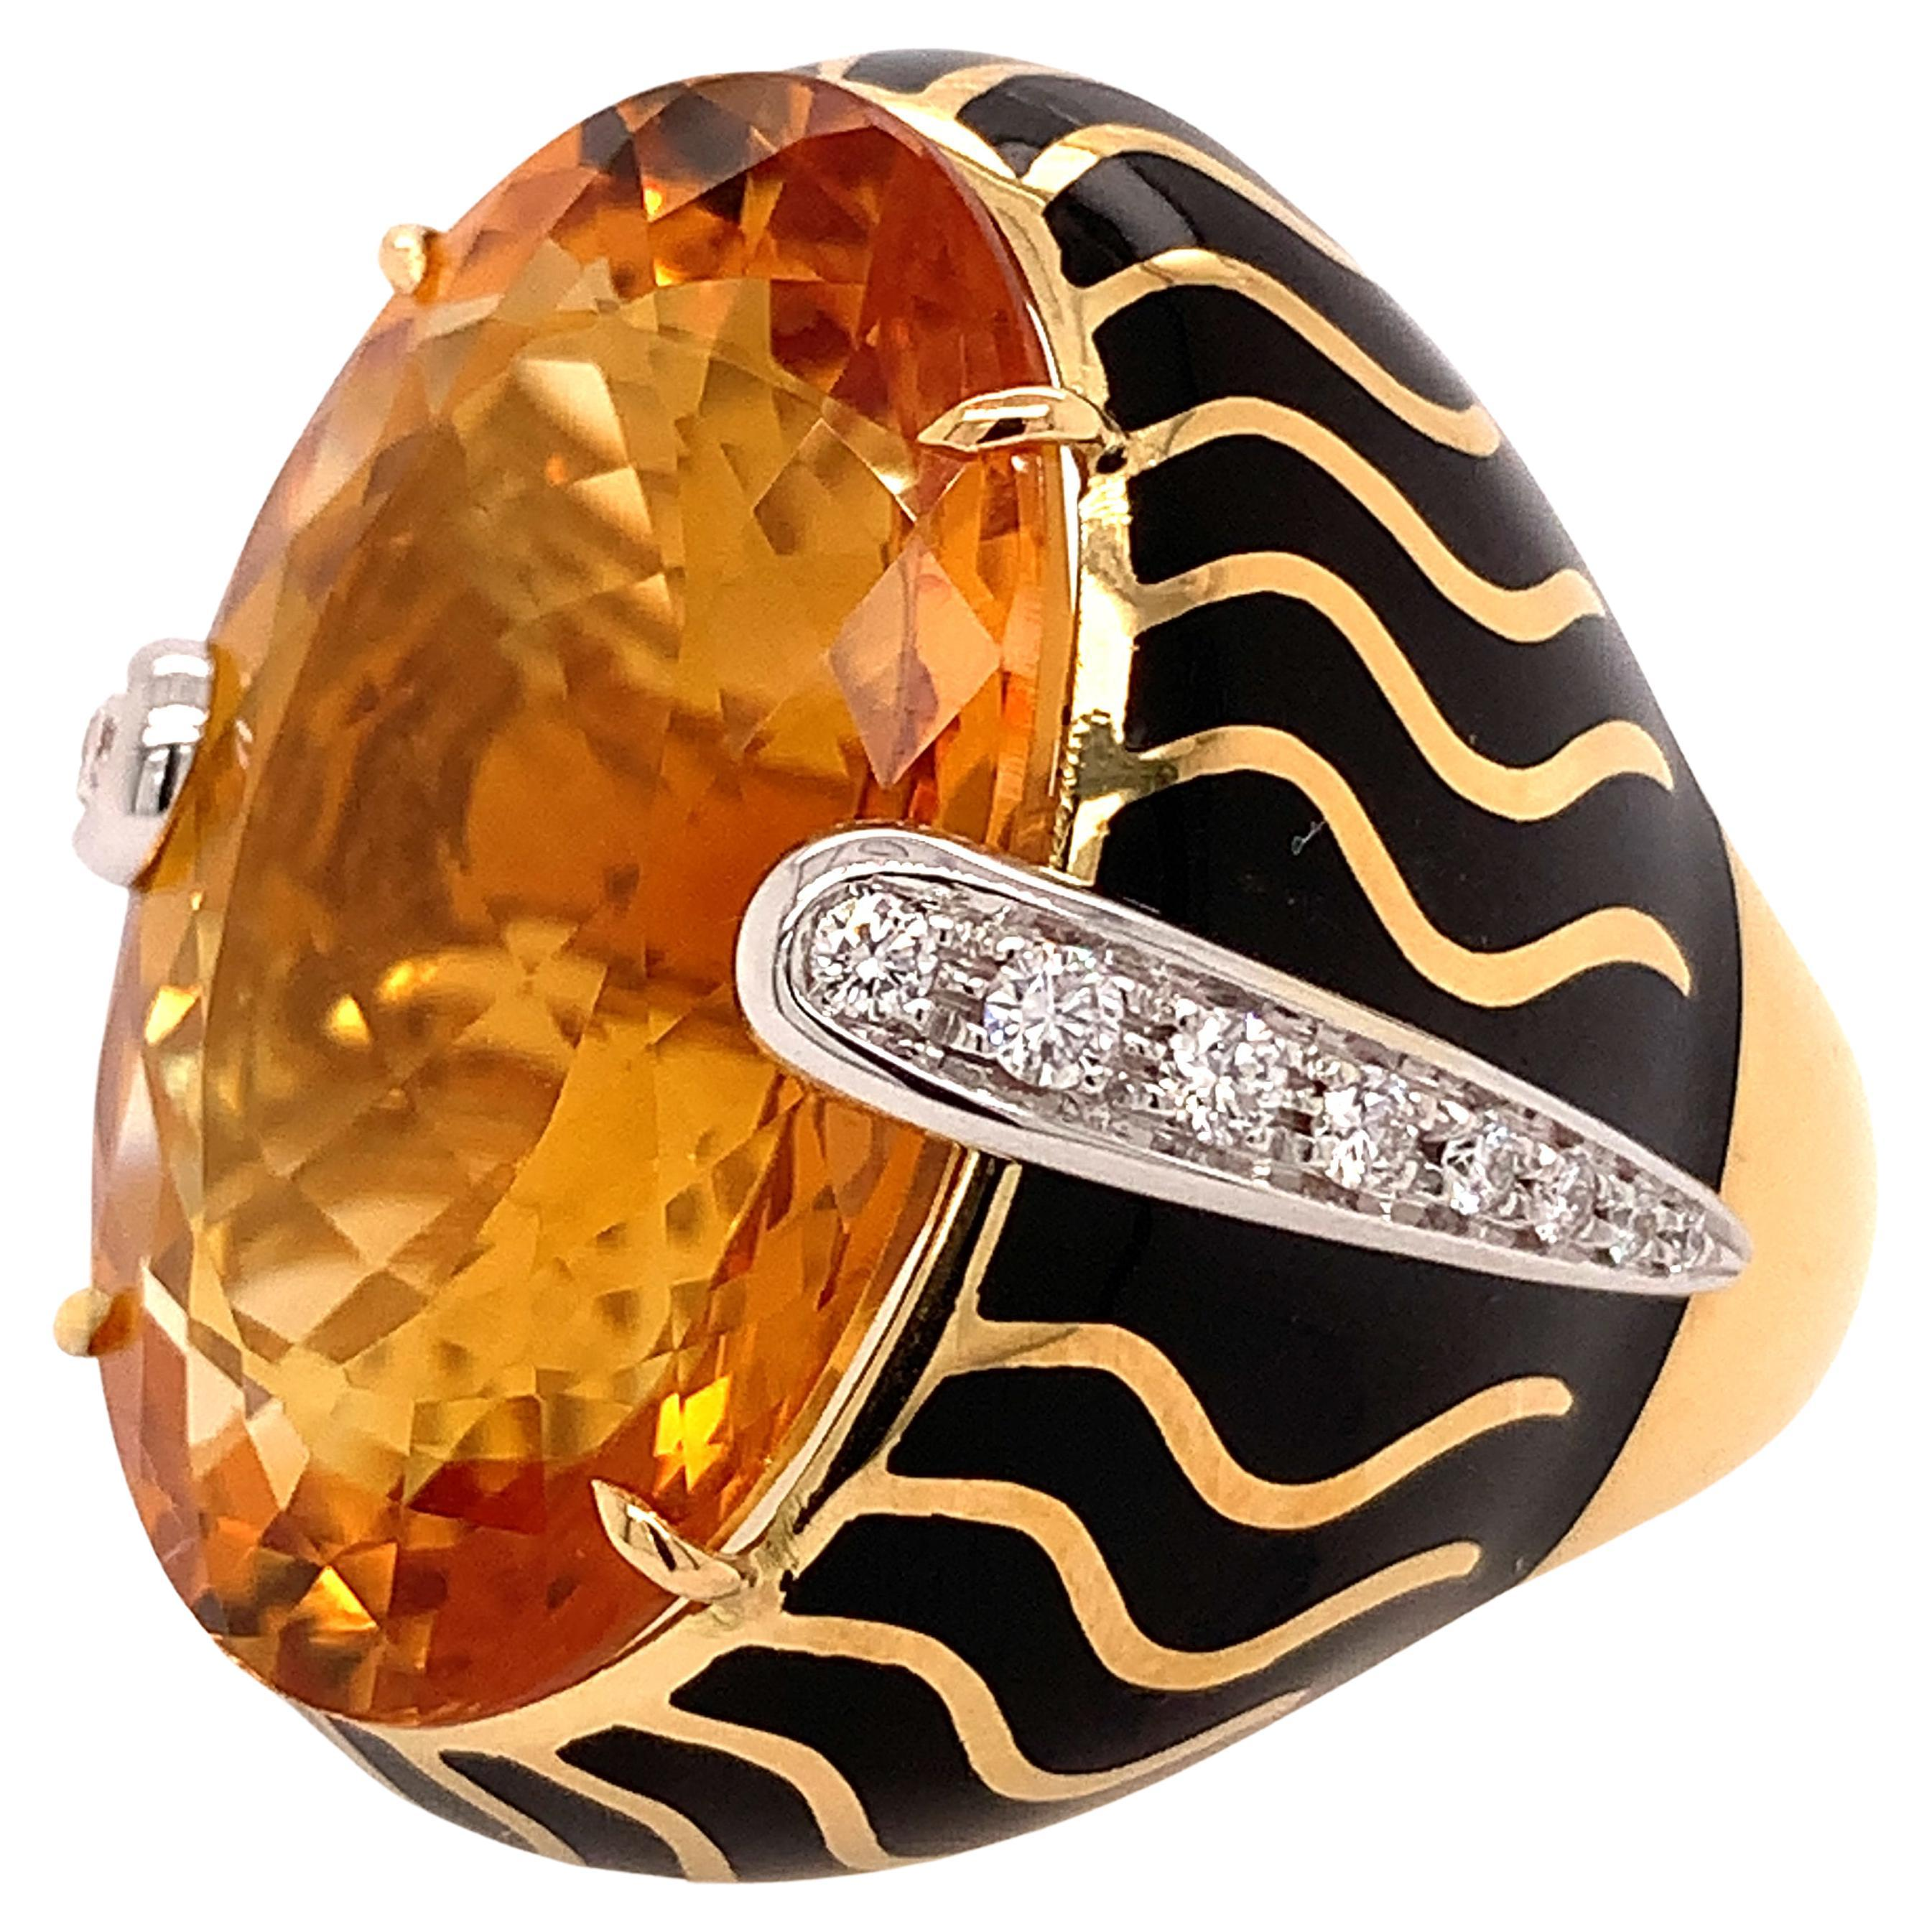 18kt Gold One of a Kind Ring with 29.15 Ct Citrine and Diamonds, Animalier Look